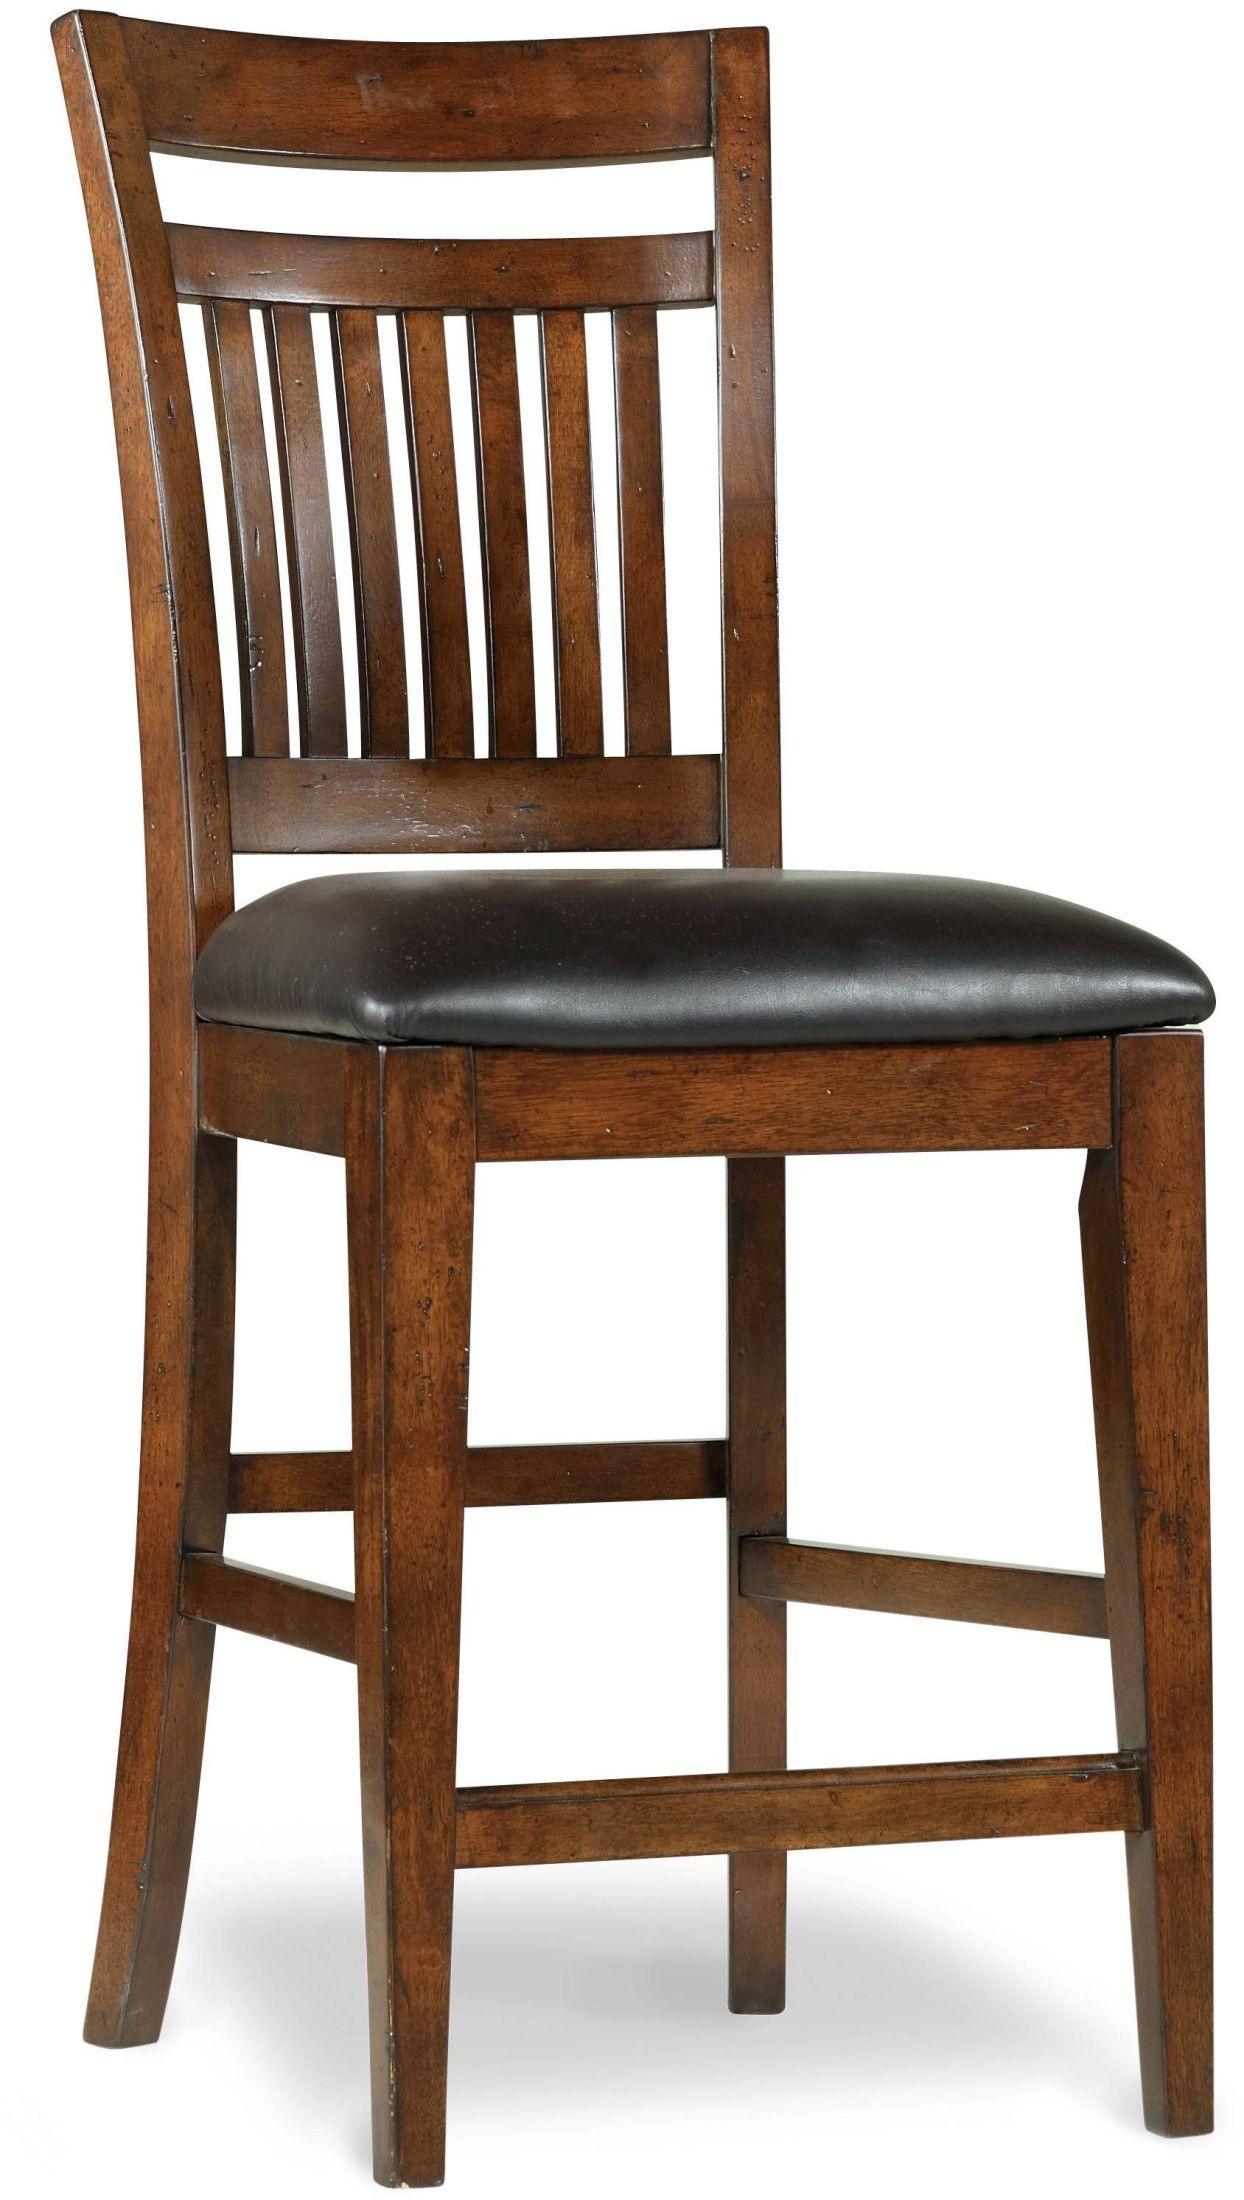 Wendover Cherry Counter Height Chair Set of 2 from Hooker